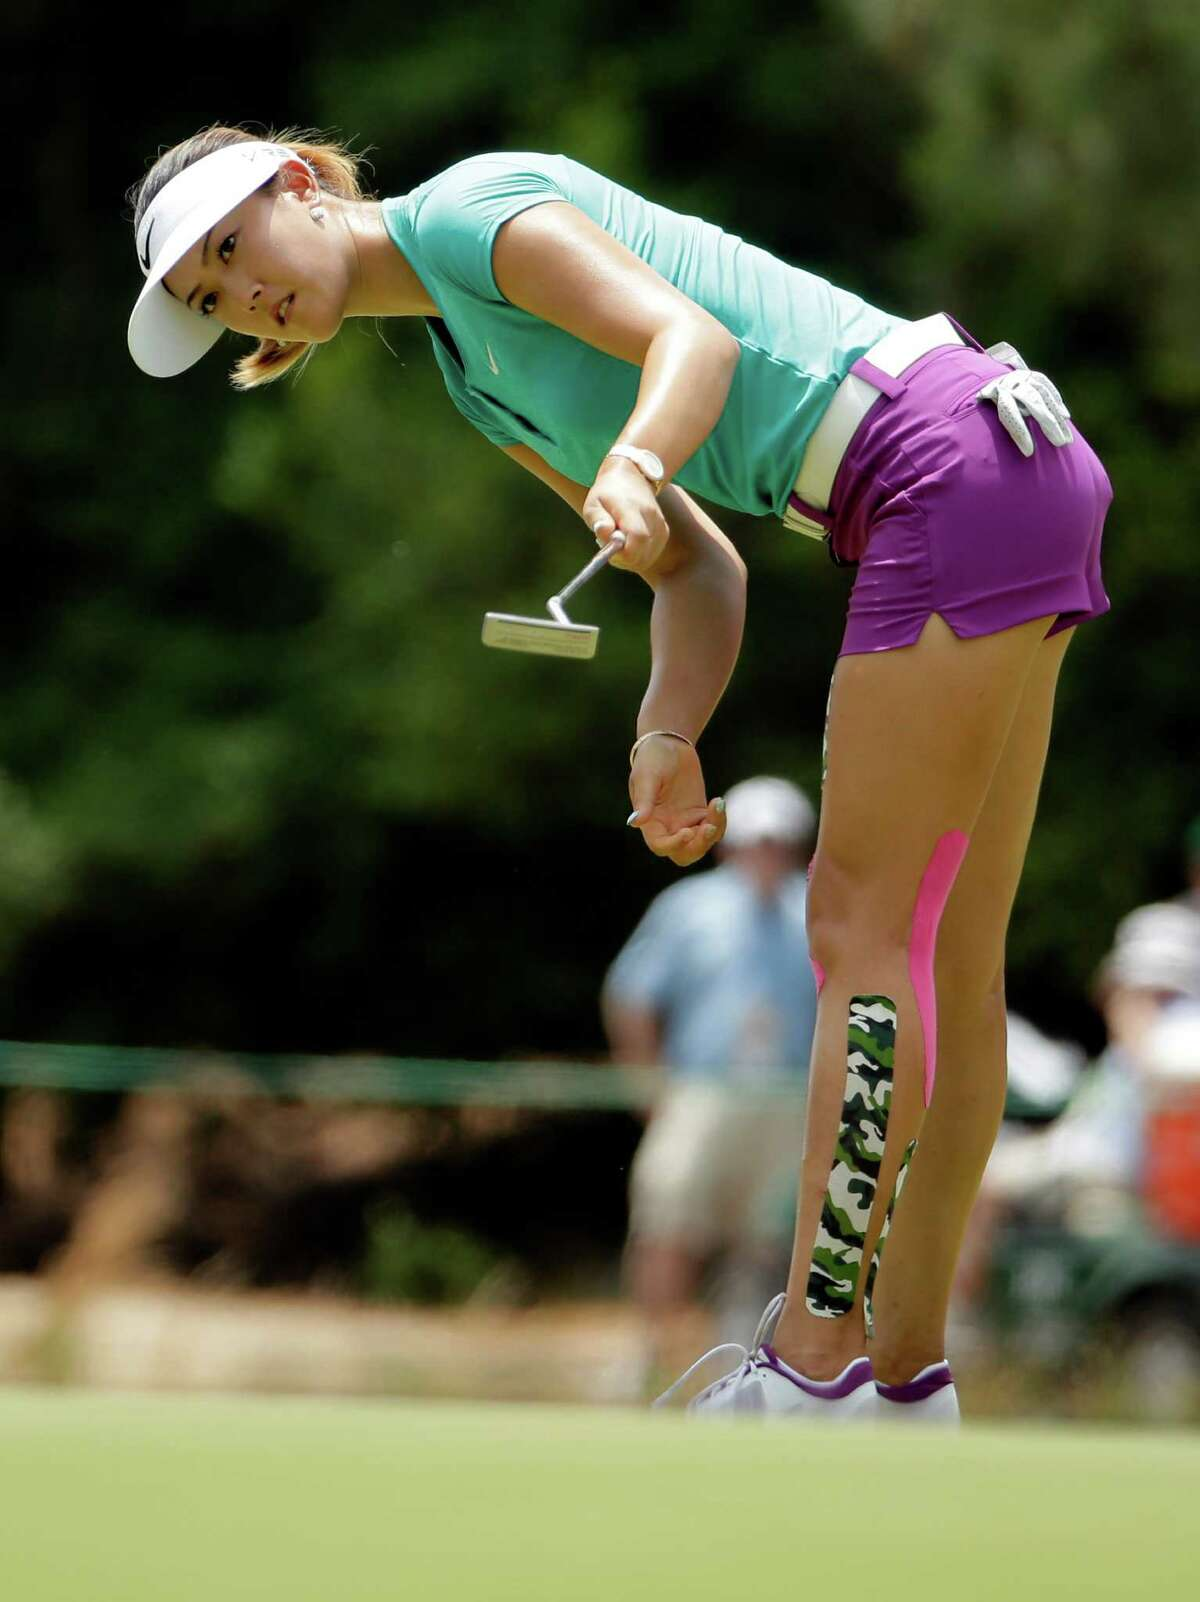 Michelle Wie reacts as she misses a putt on the second hole during the final round of the U.S. Women's Open golf tournament in Pinehurst, N.C., Sunday, June 22, 2014. (AP Photo/Chuck Burton) ORG XMIT: NCCB101